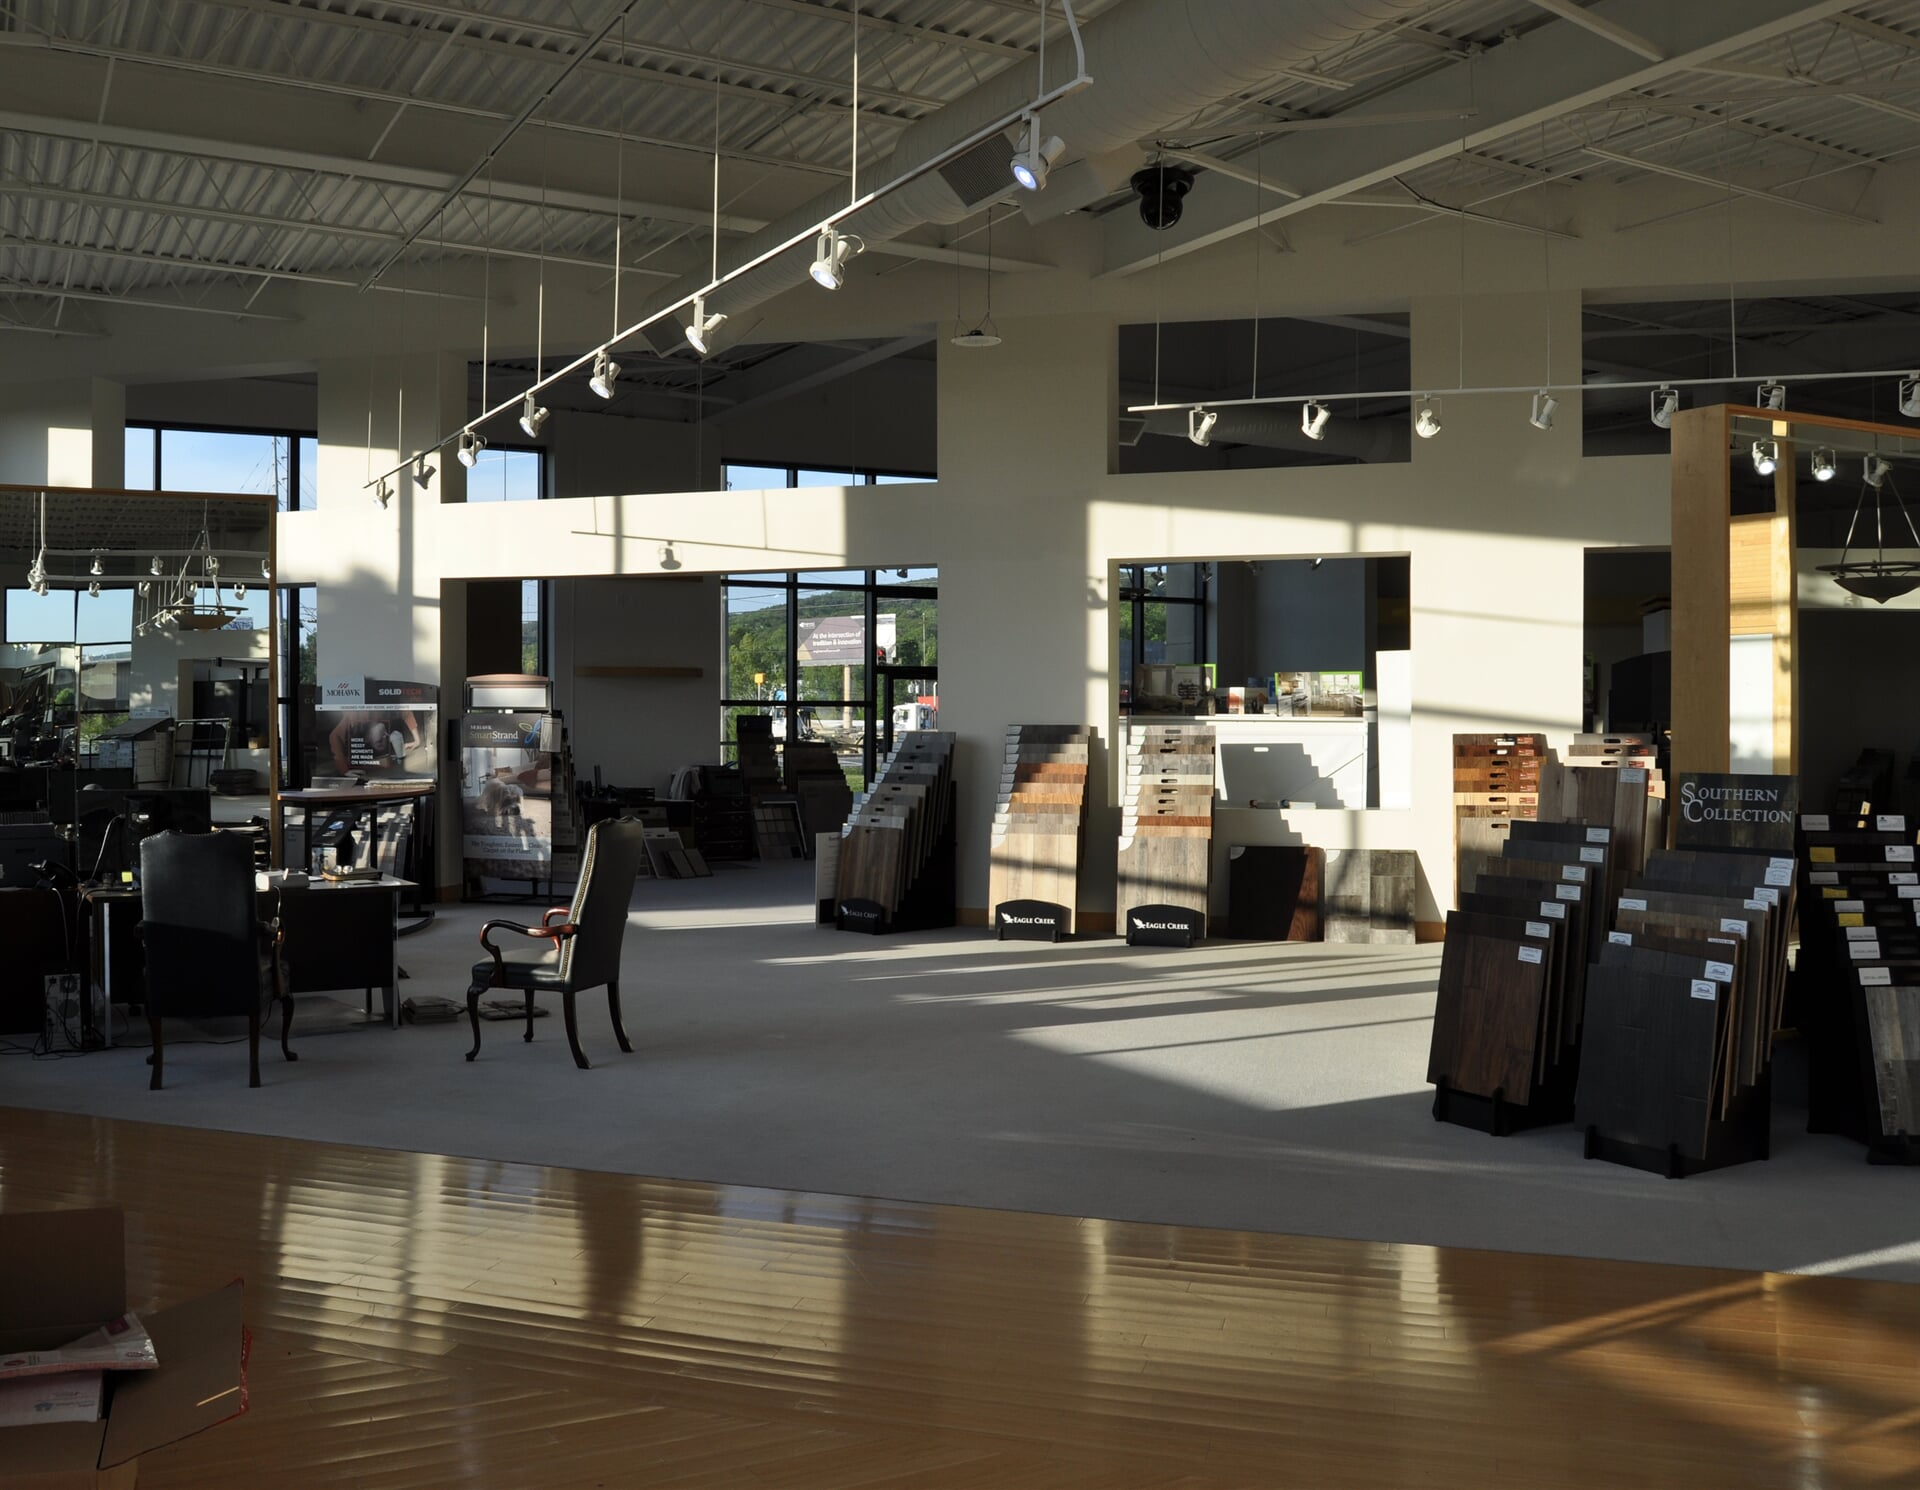 Our flooring options even cover our own floors at Beckler's Flooring Center